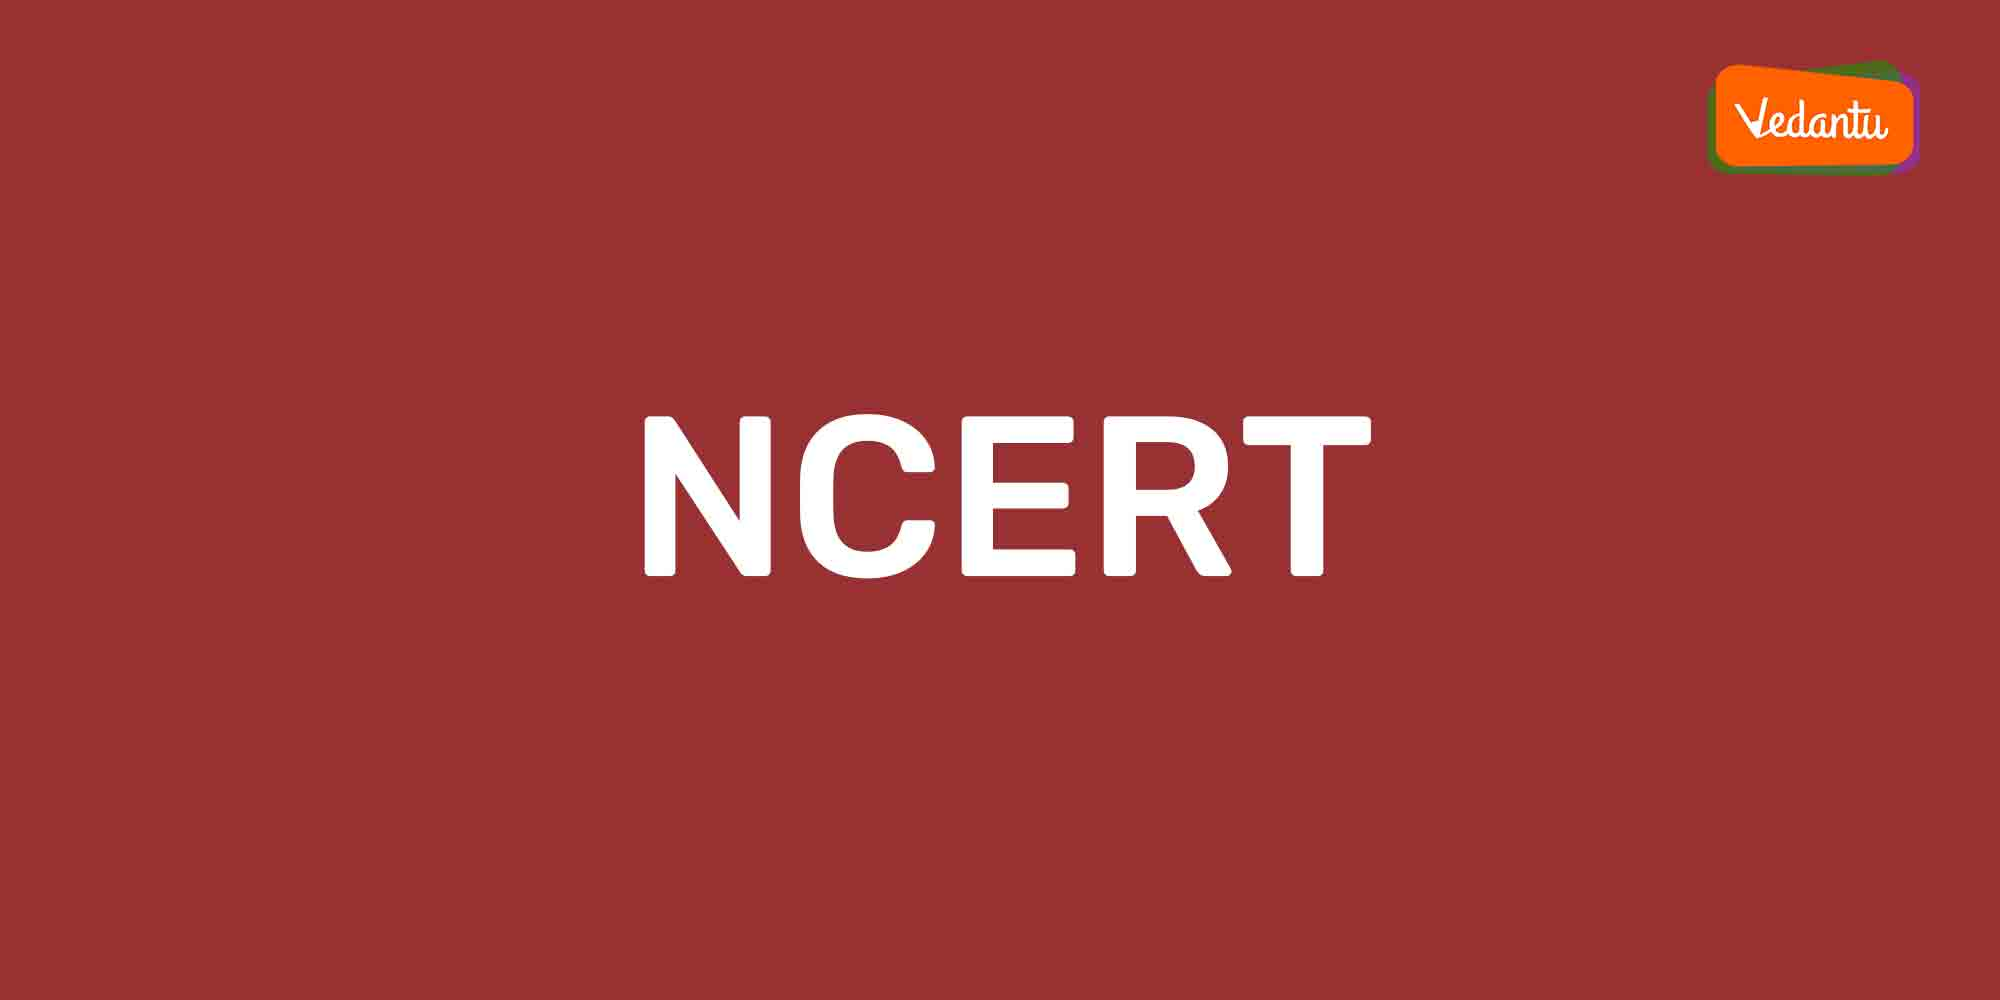 Where to Find Best Solutions for NCERT Books?